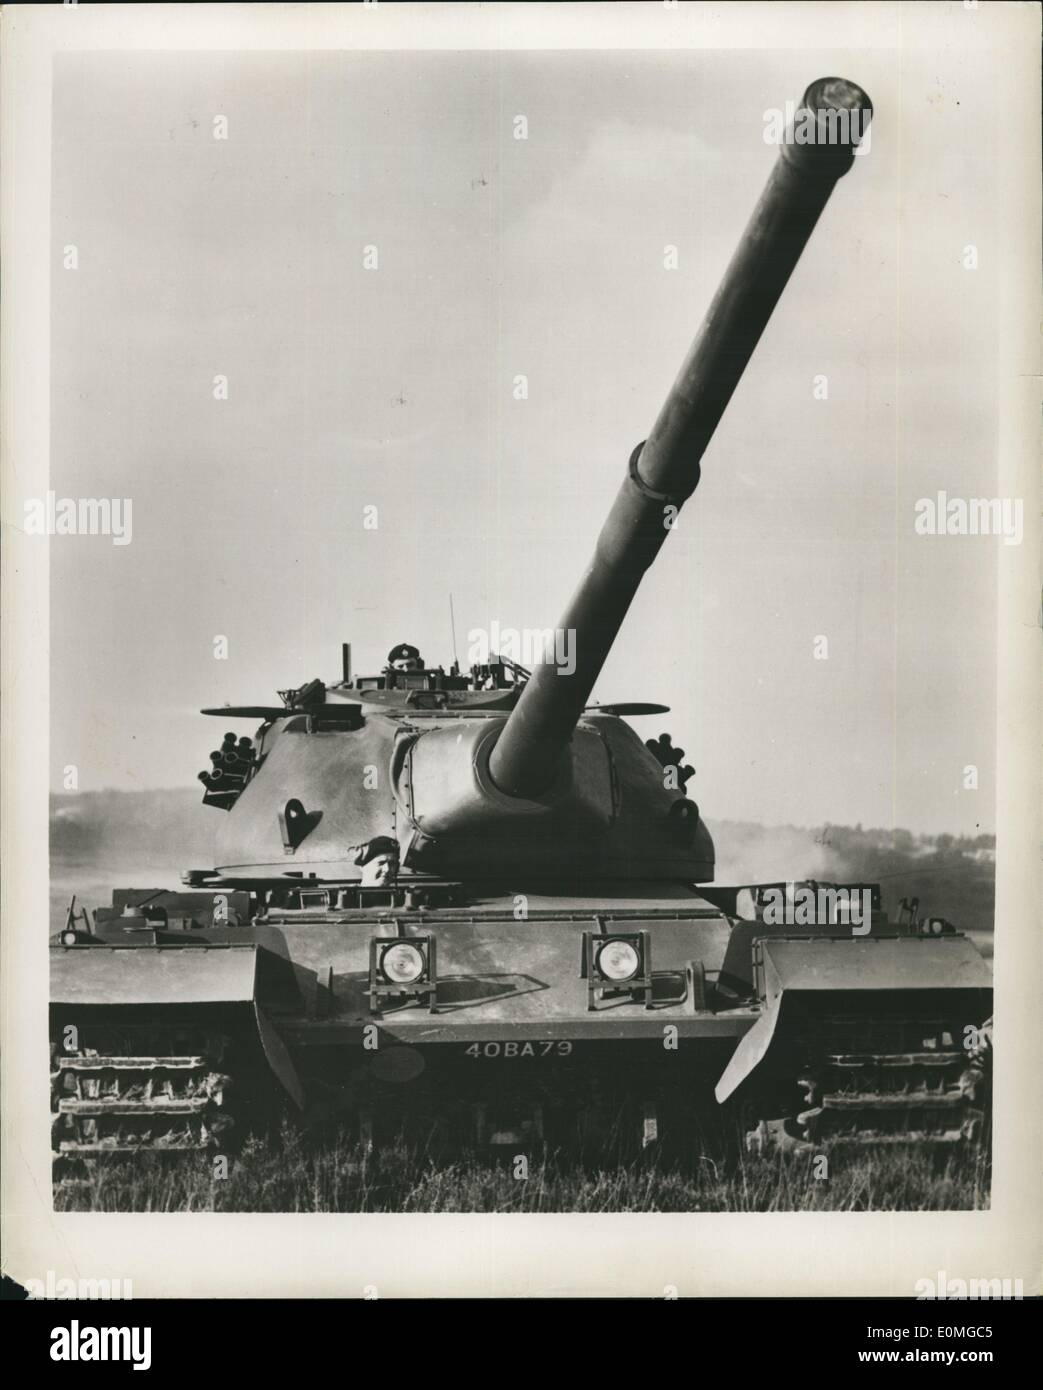 Apr. 04, 1955 - Conqueror Aims High By Electric Control: On trial Army in Germany is Britain's latest, heaviest tank, the Conqueror. Powered by a Meteor wine, the 65-tons tank travels at 20 m.p.h. and carriers a crew of four. It was designed by the team responsible for the Centurion, British tank that won high praise from the allies in Korea. Photo shows The long run barrel of the Conqueror points to the sky during a demonstration at the British Fighting Vehicle Research and Development Establishment at Surrey, England - Stock Image